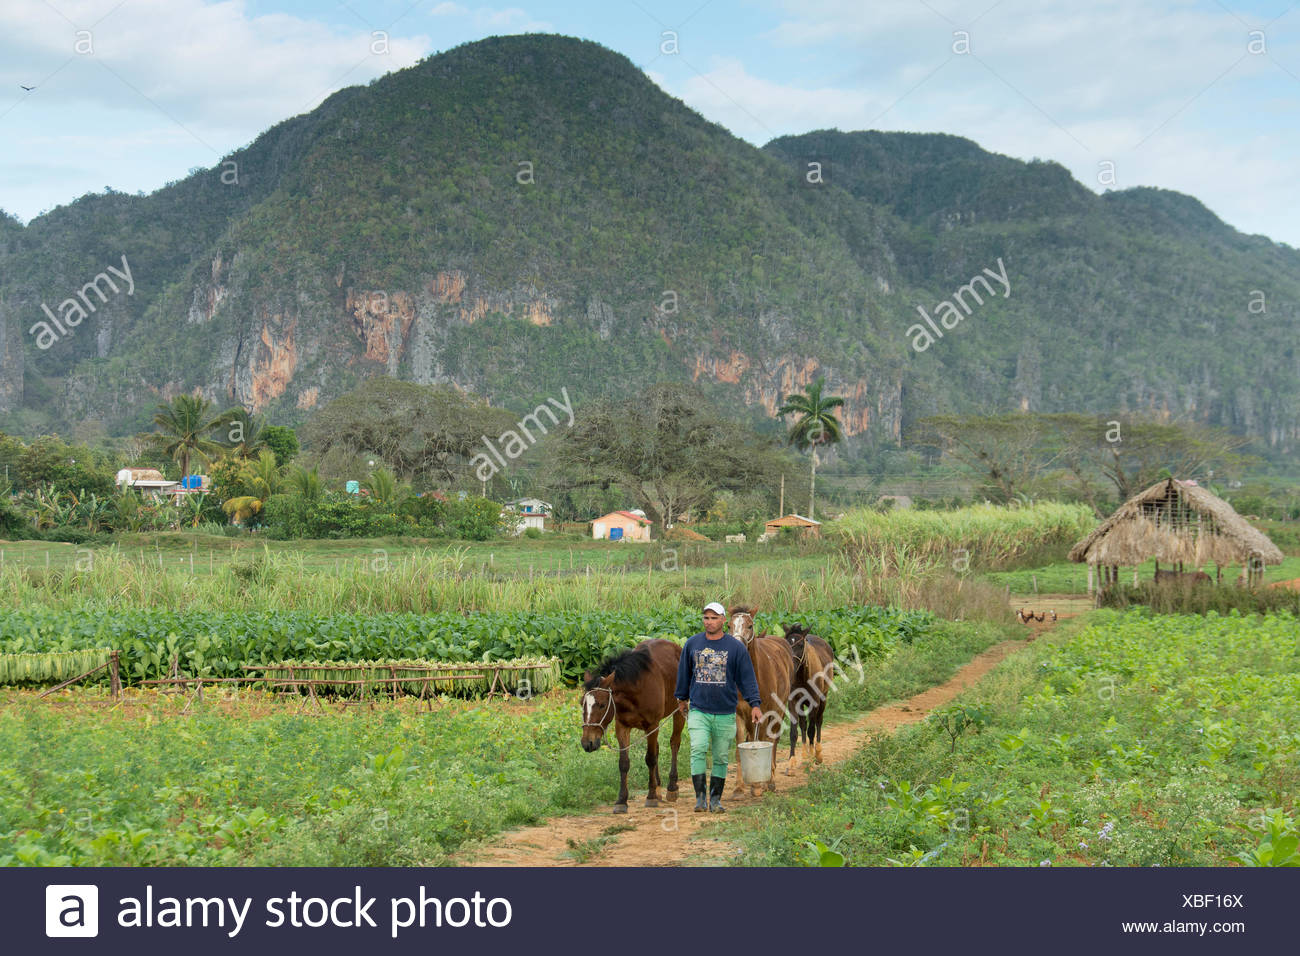 Horse being readied for guests at Tobacco fields, Vinales, Cuba - Stock Image